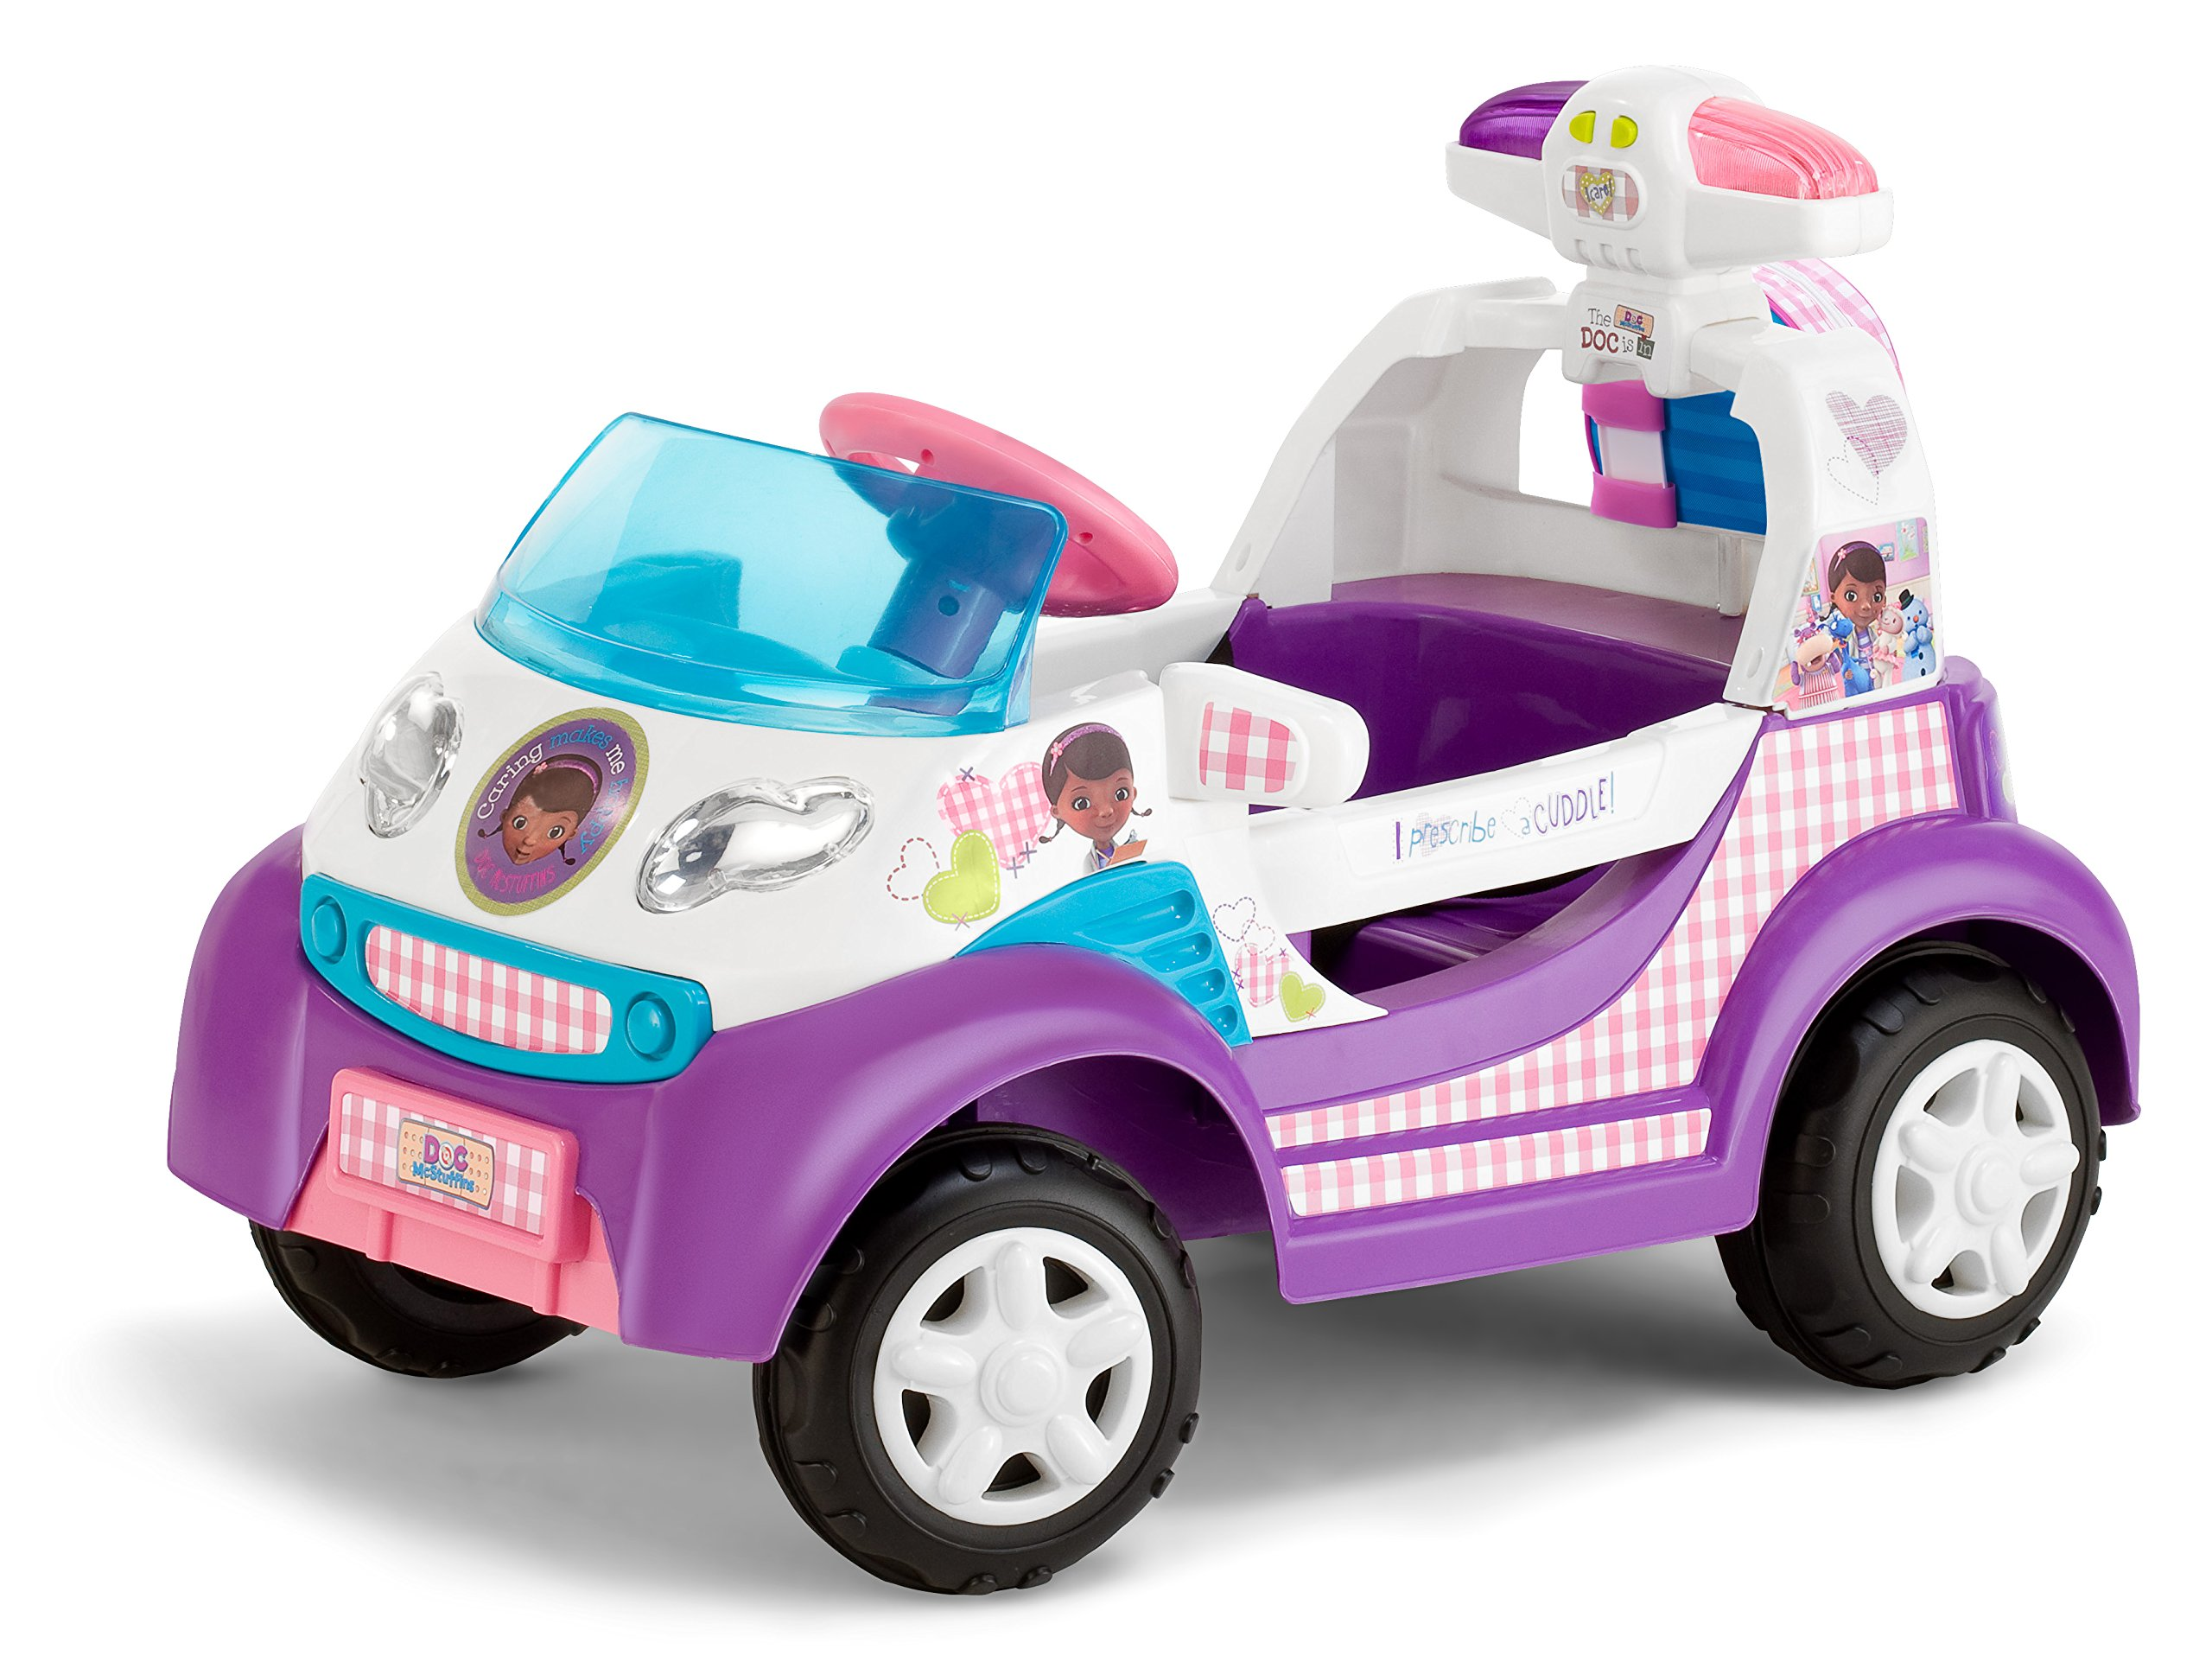 Kid Trax Doc McStuffins 6V Ambulance Ride On by Kid Trax (Image #1)